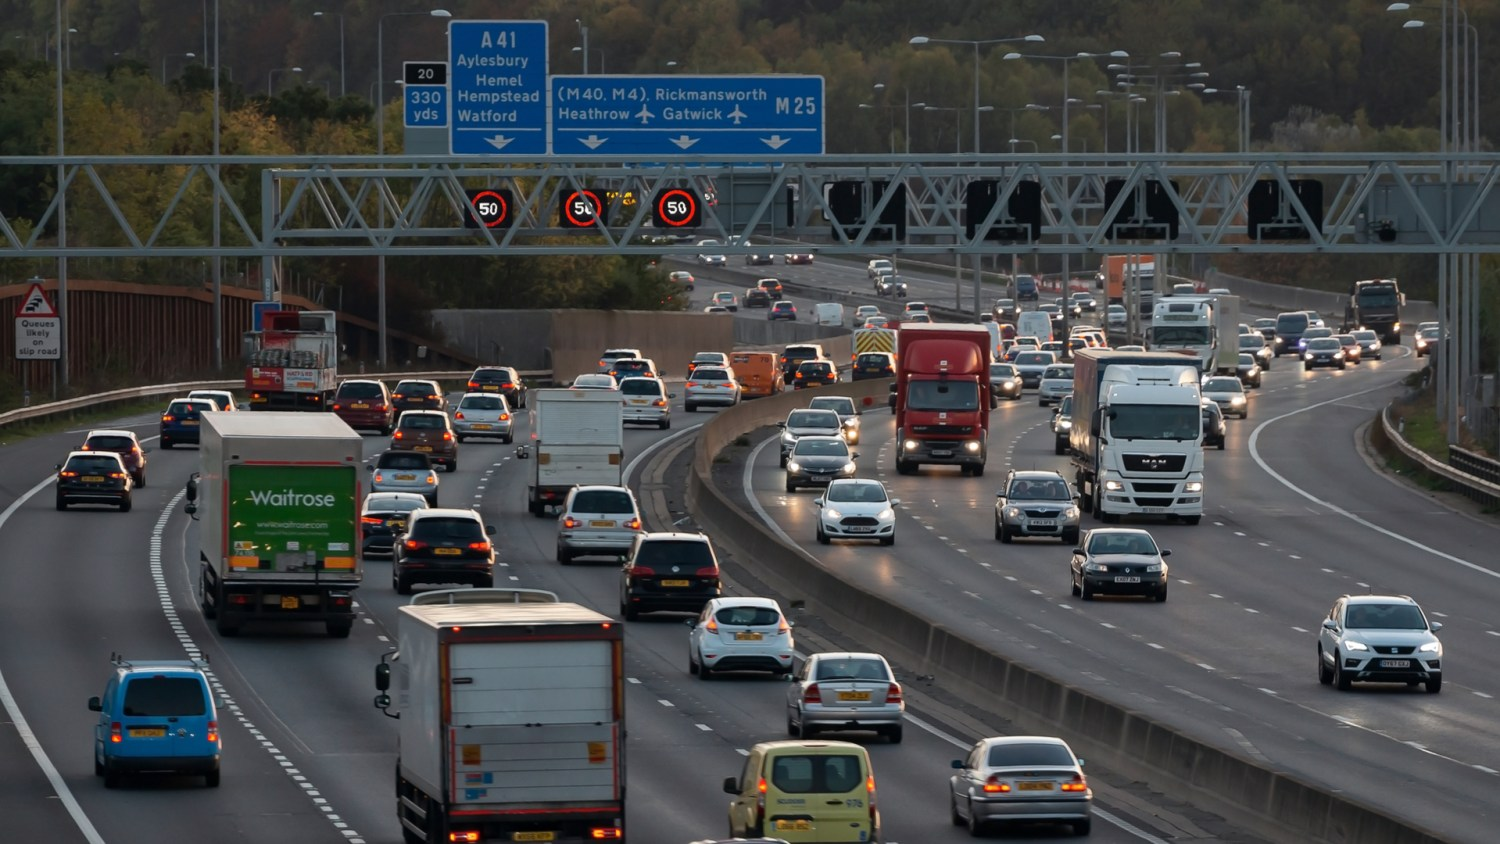 Heavy traffic on the M25 near Heathrow